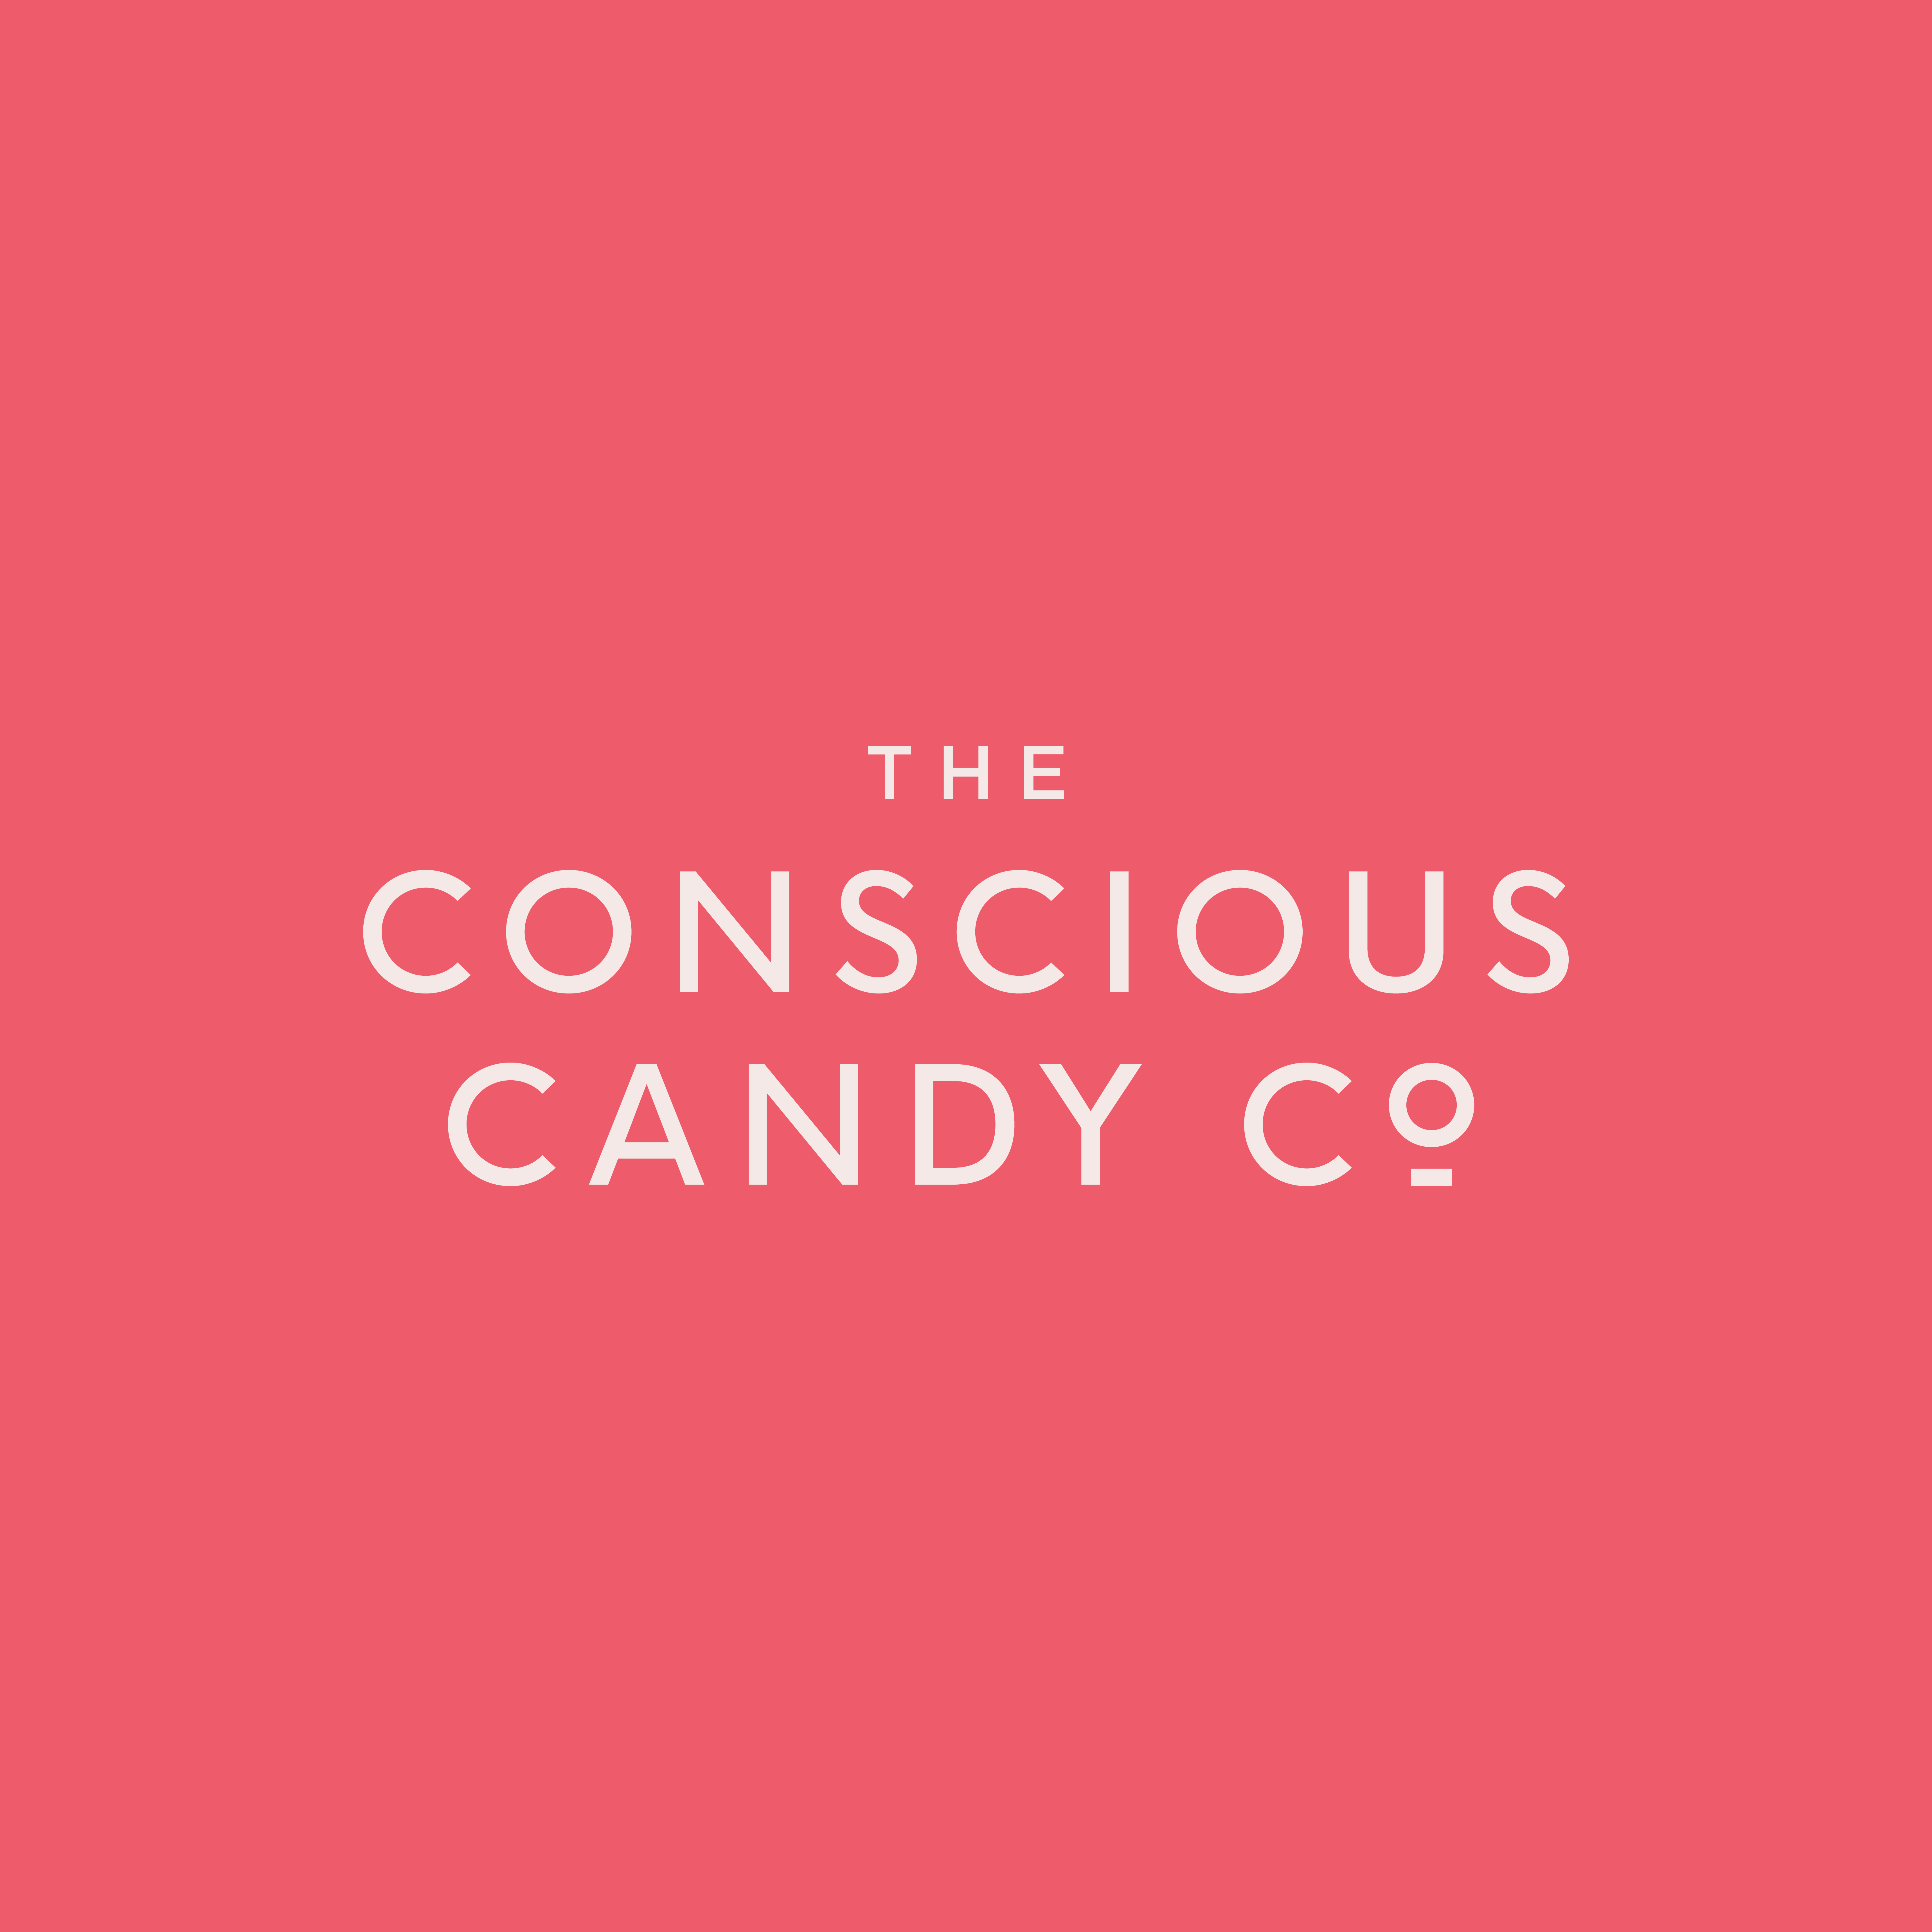 The Conscious Candy Company Limited